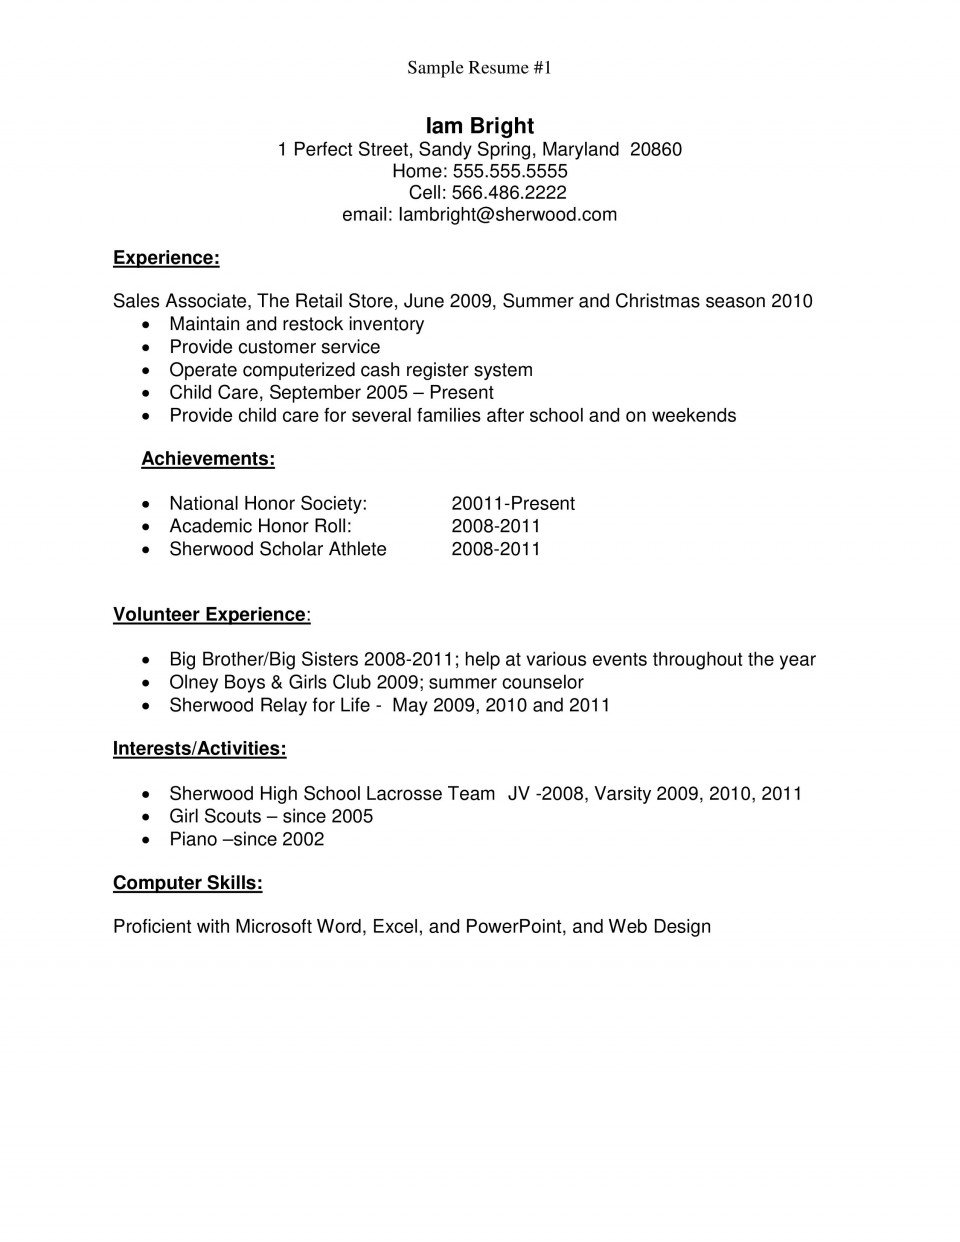 001 Fascinating Resume Template High School Student Image  Sample First Job960